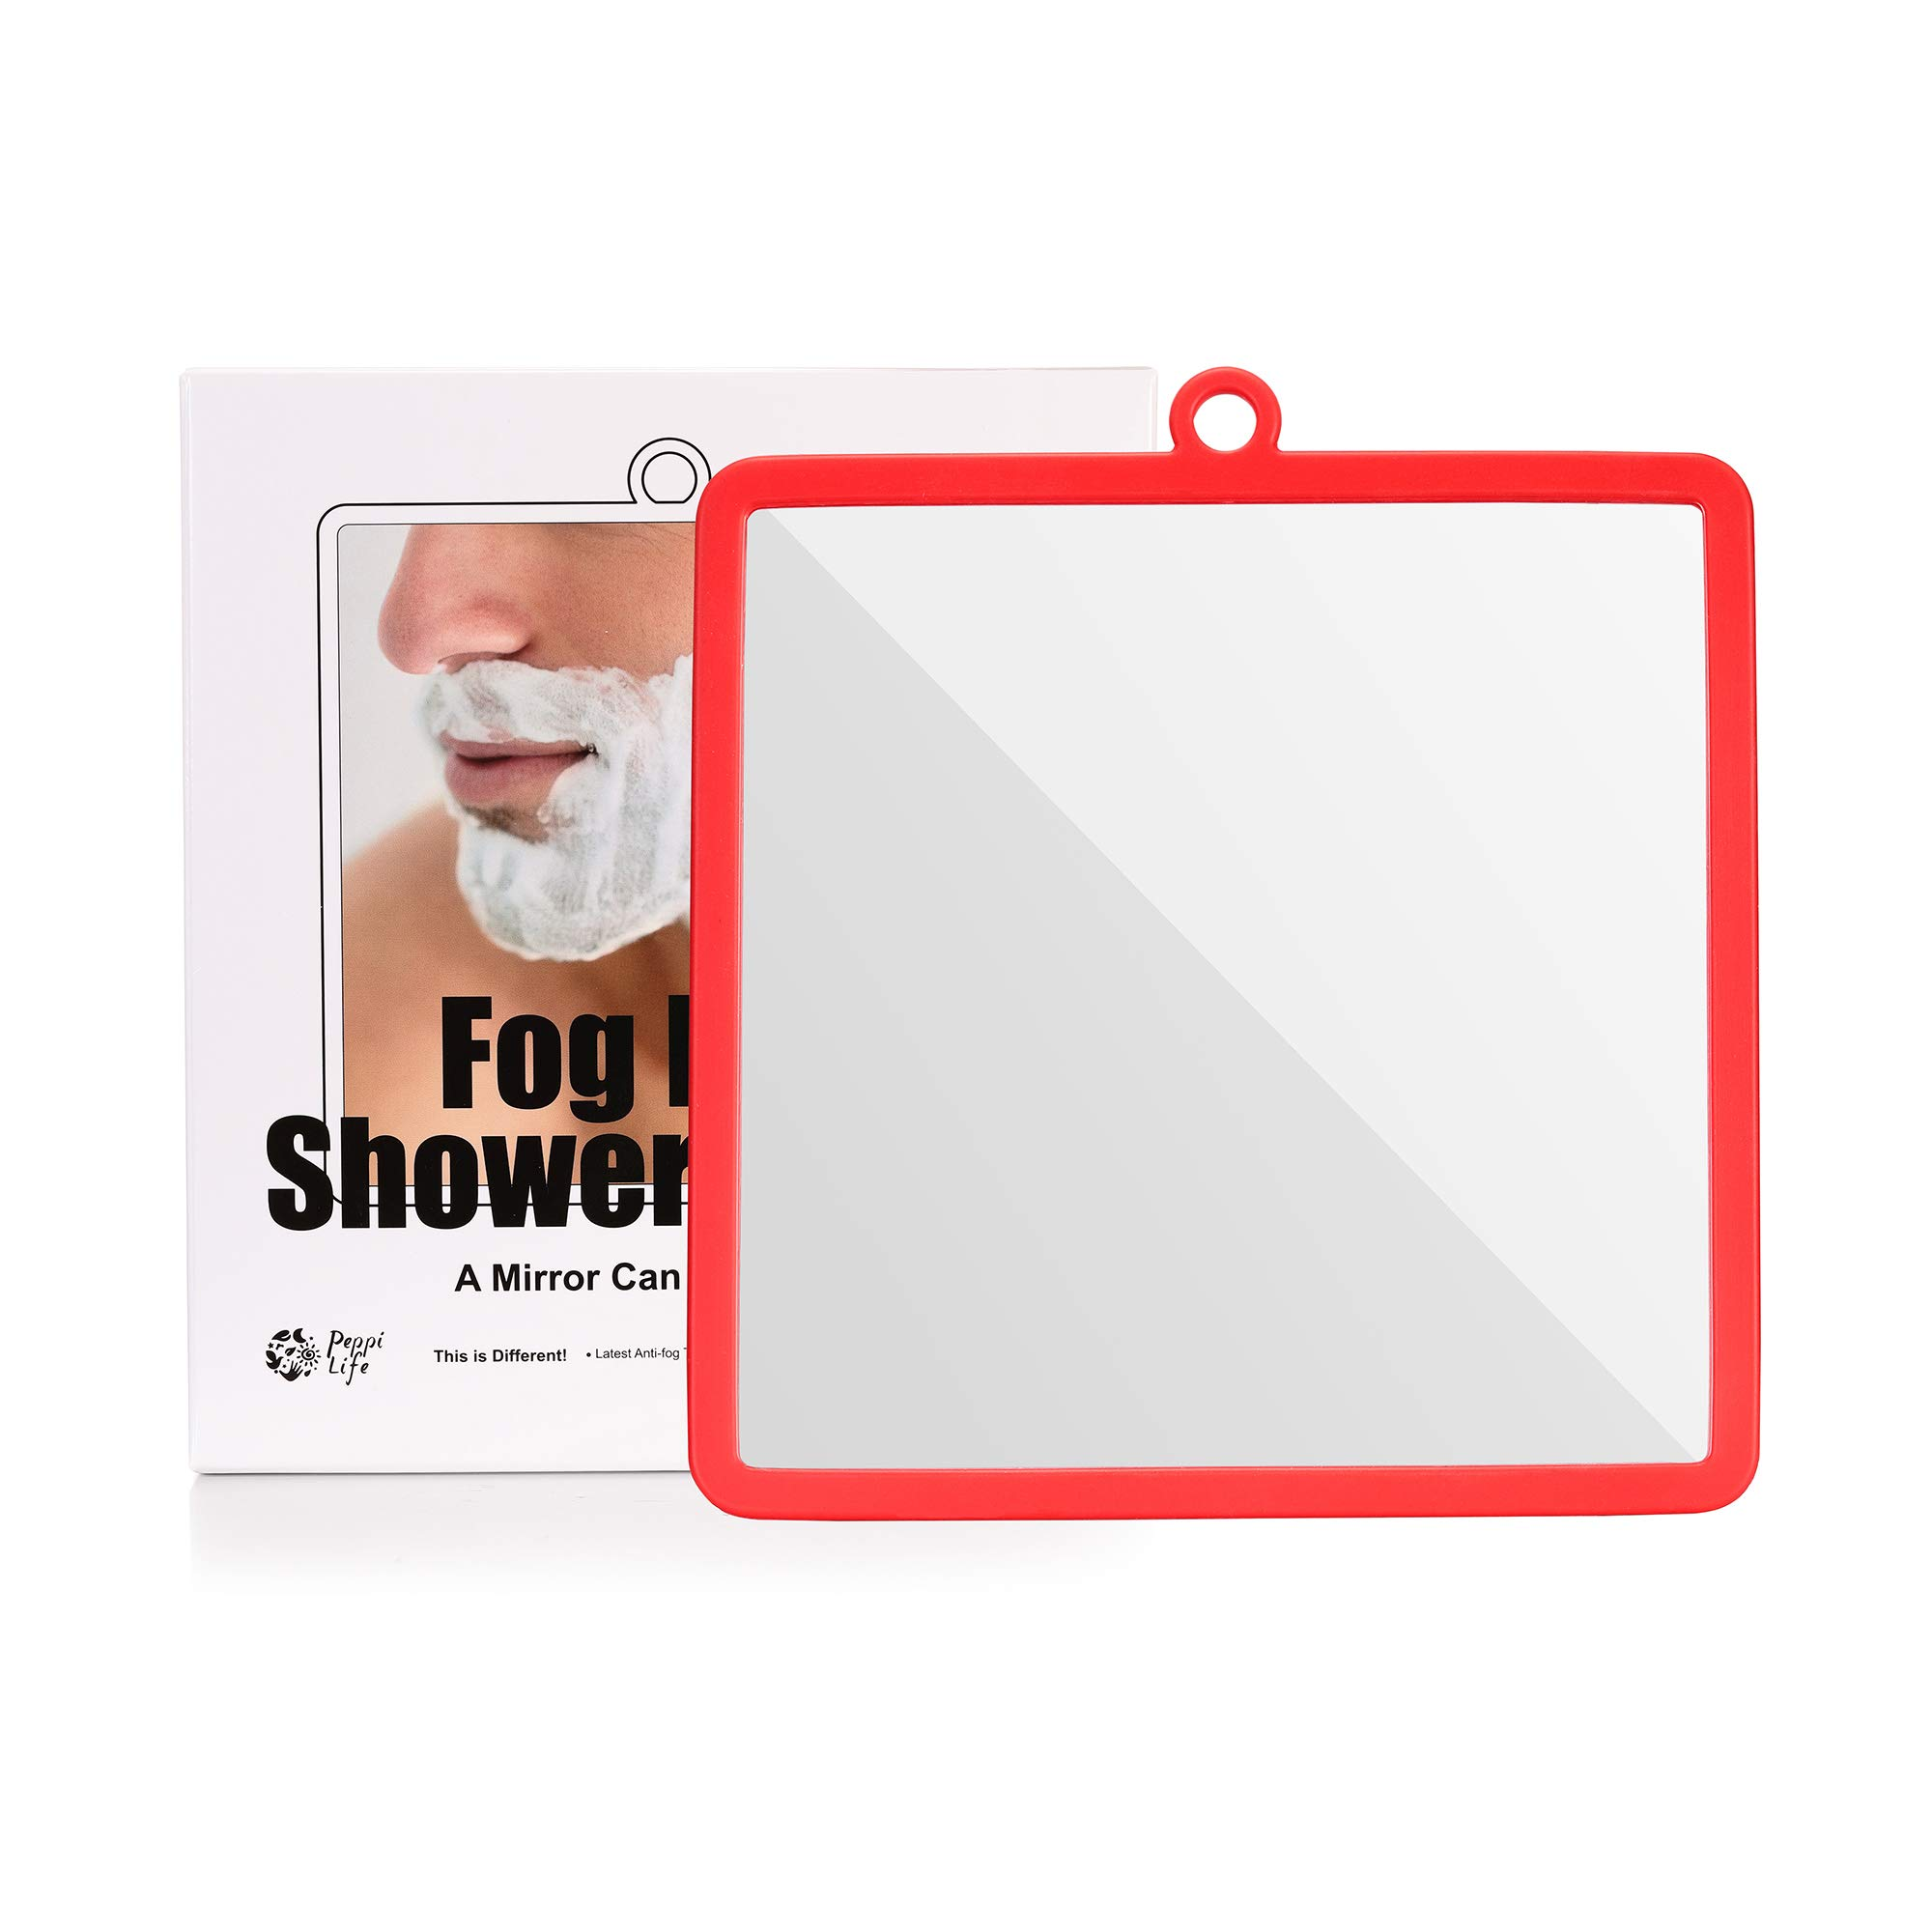 Fogless Shower Mirror with Protective Silicone Sheath for Shaving and Make-up,New Nano Fogless Technology That Real Works, Multi-Colors Option (red)